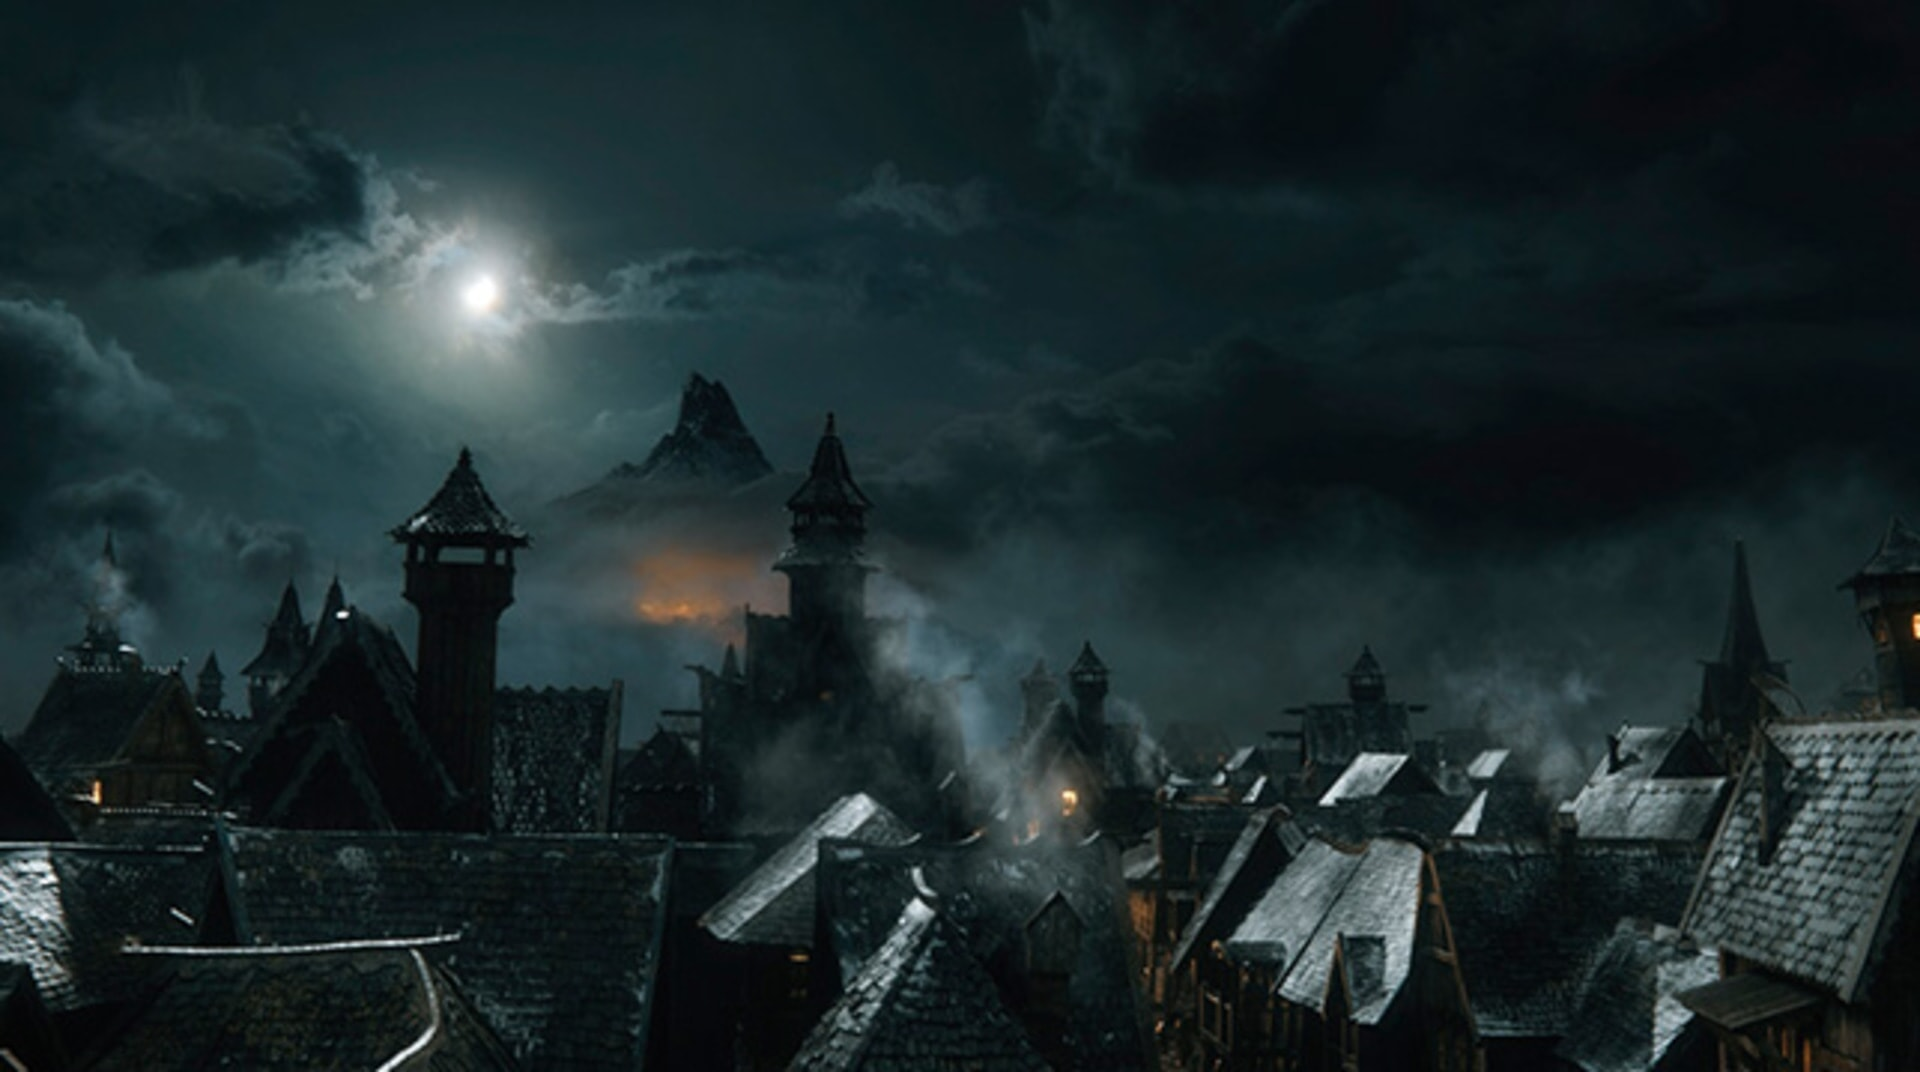 The Hobbit: The Battle of the Five Armies - Image 50